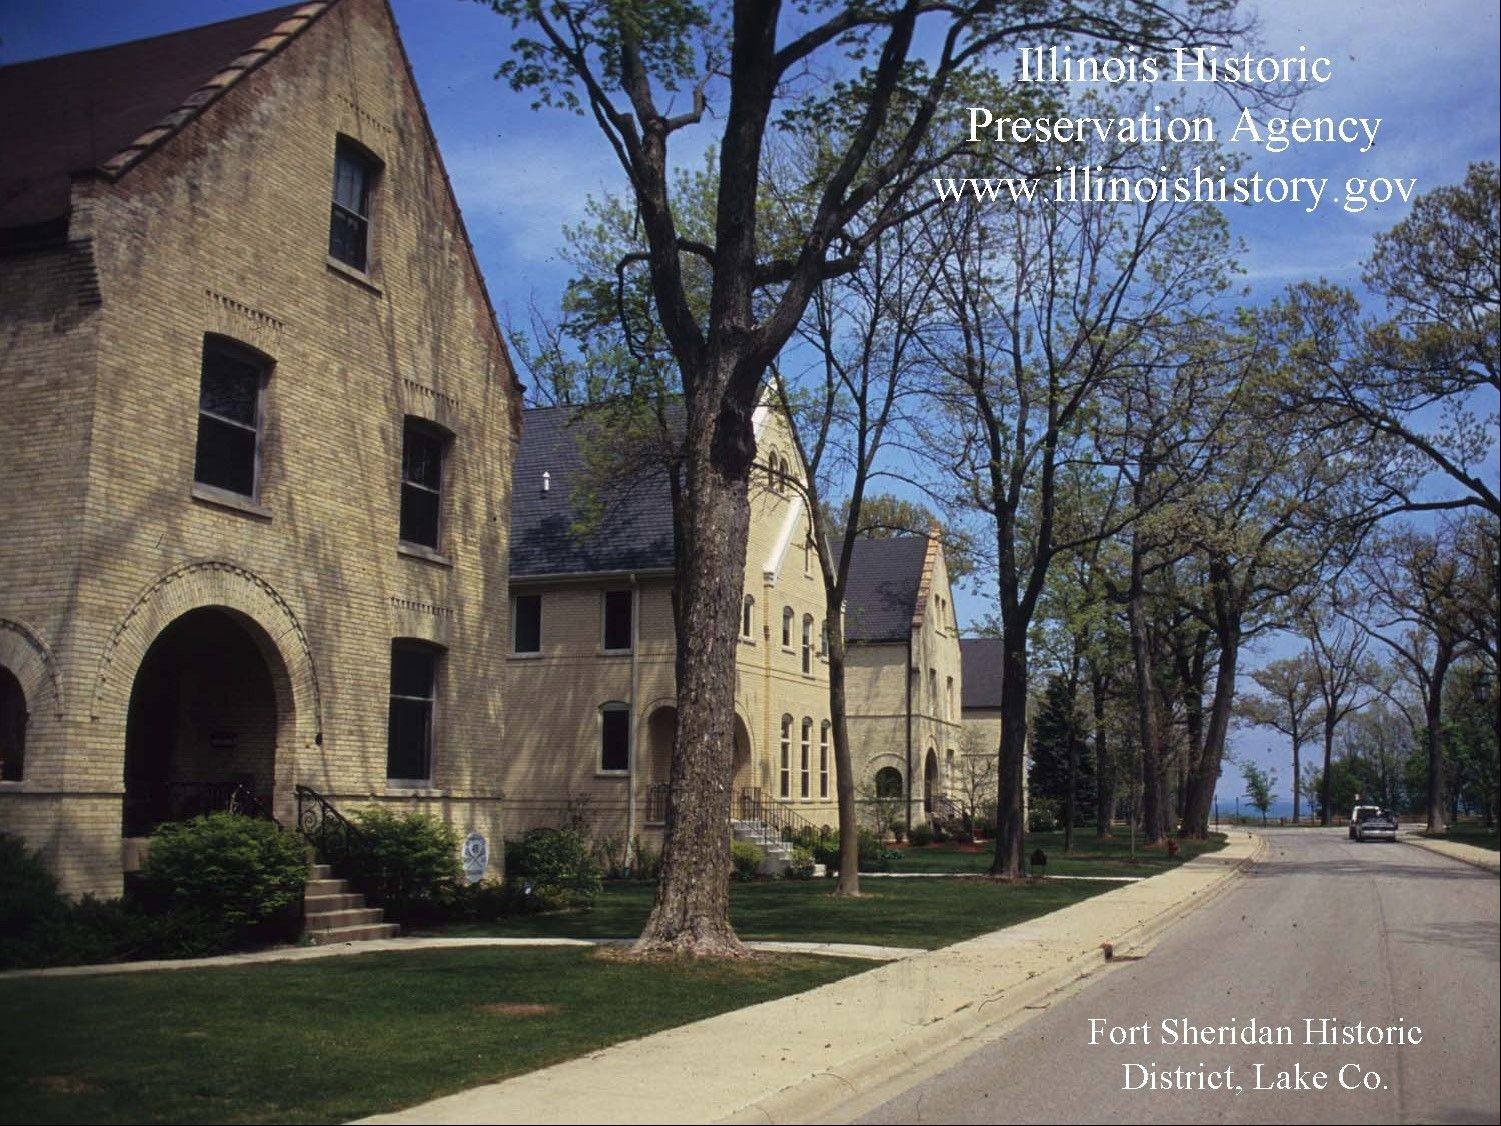 Fort Dearborn in Highland Park is among the architectural images available in the new screensaver launched by the Illinois Historic Preservation Agency.